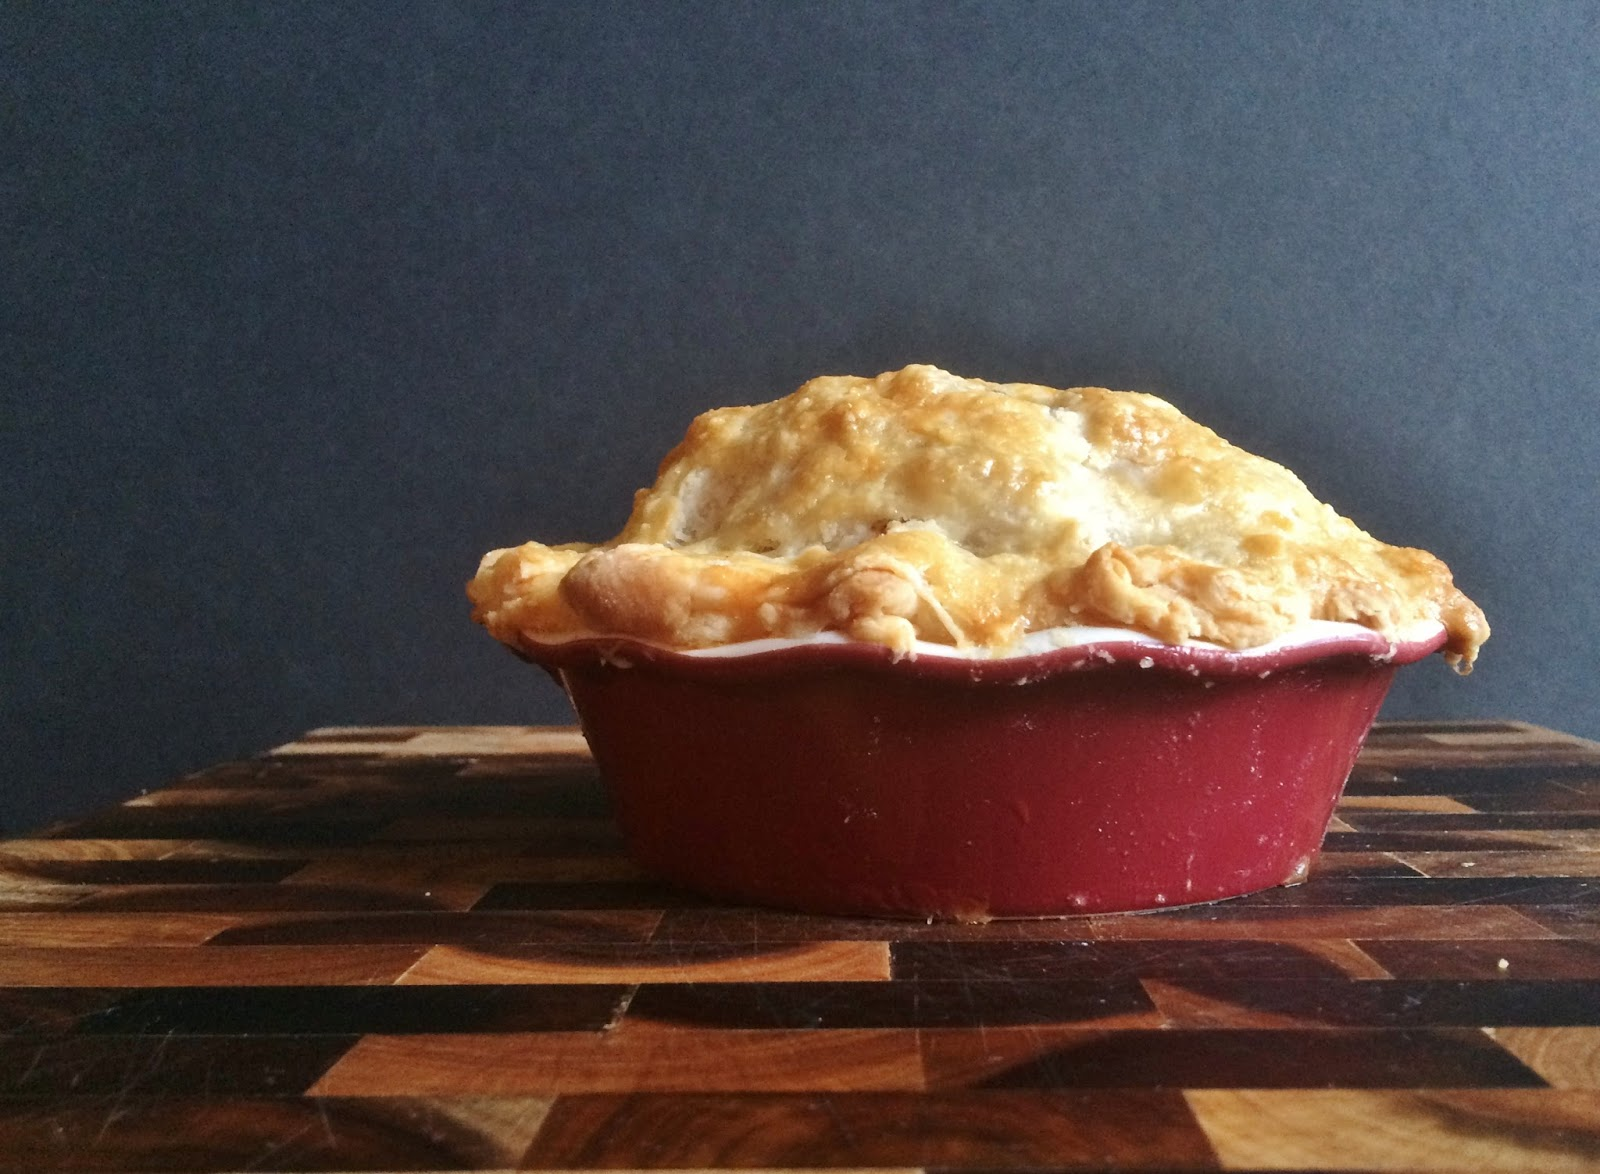 My Tiny Oven: Apple Pie for 2 with Sour Cream Pie Crust